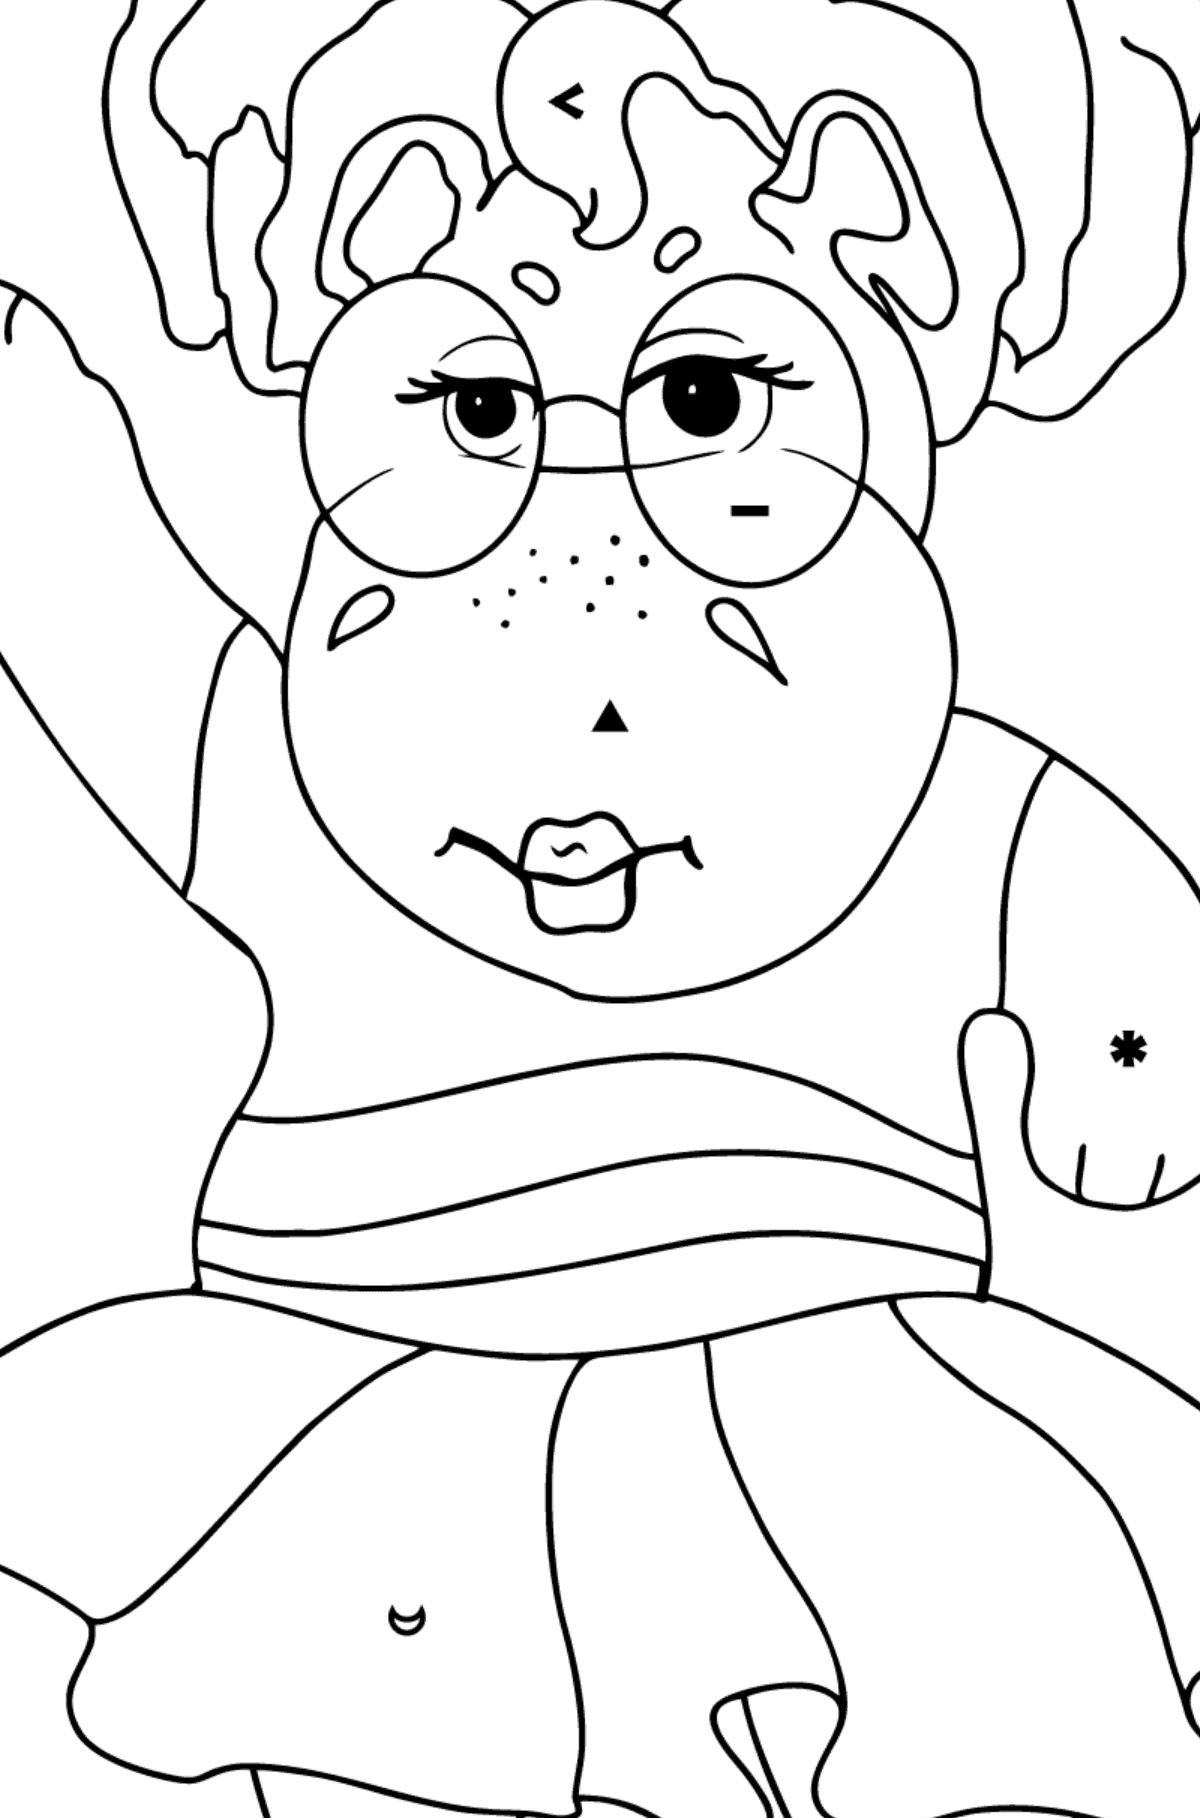 Coloring Page - A Hippo is Dancing in Sunglasses for Children  - Color by Special Symbols